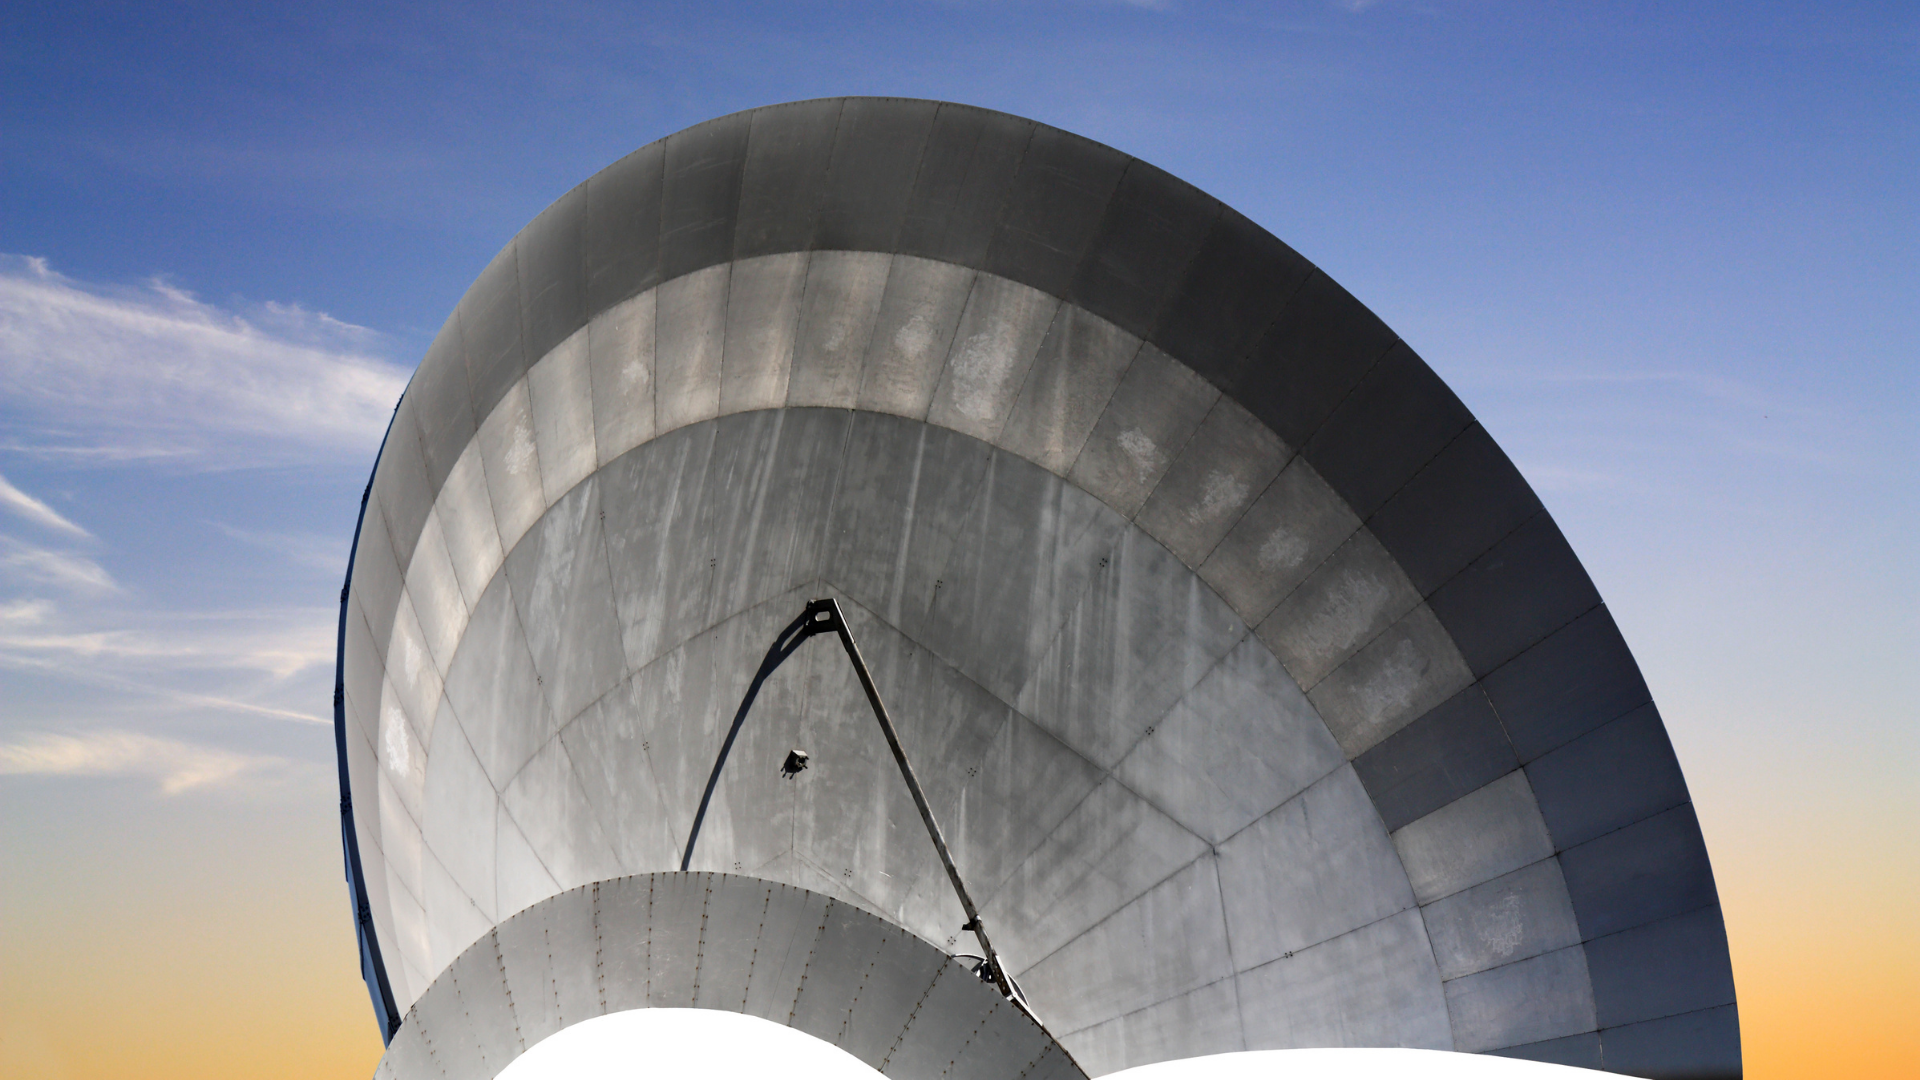 Satellite dish with a metallic reflex reflector in operation for satellite communications